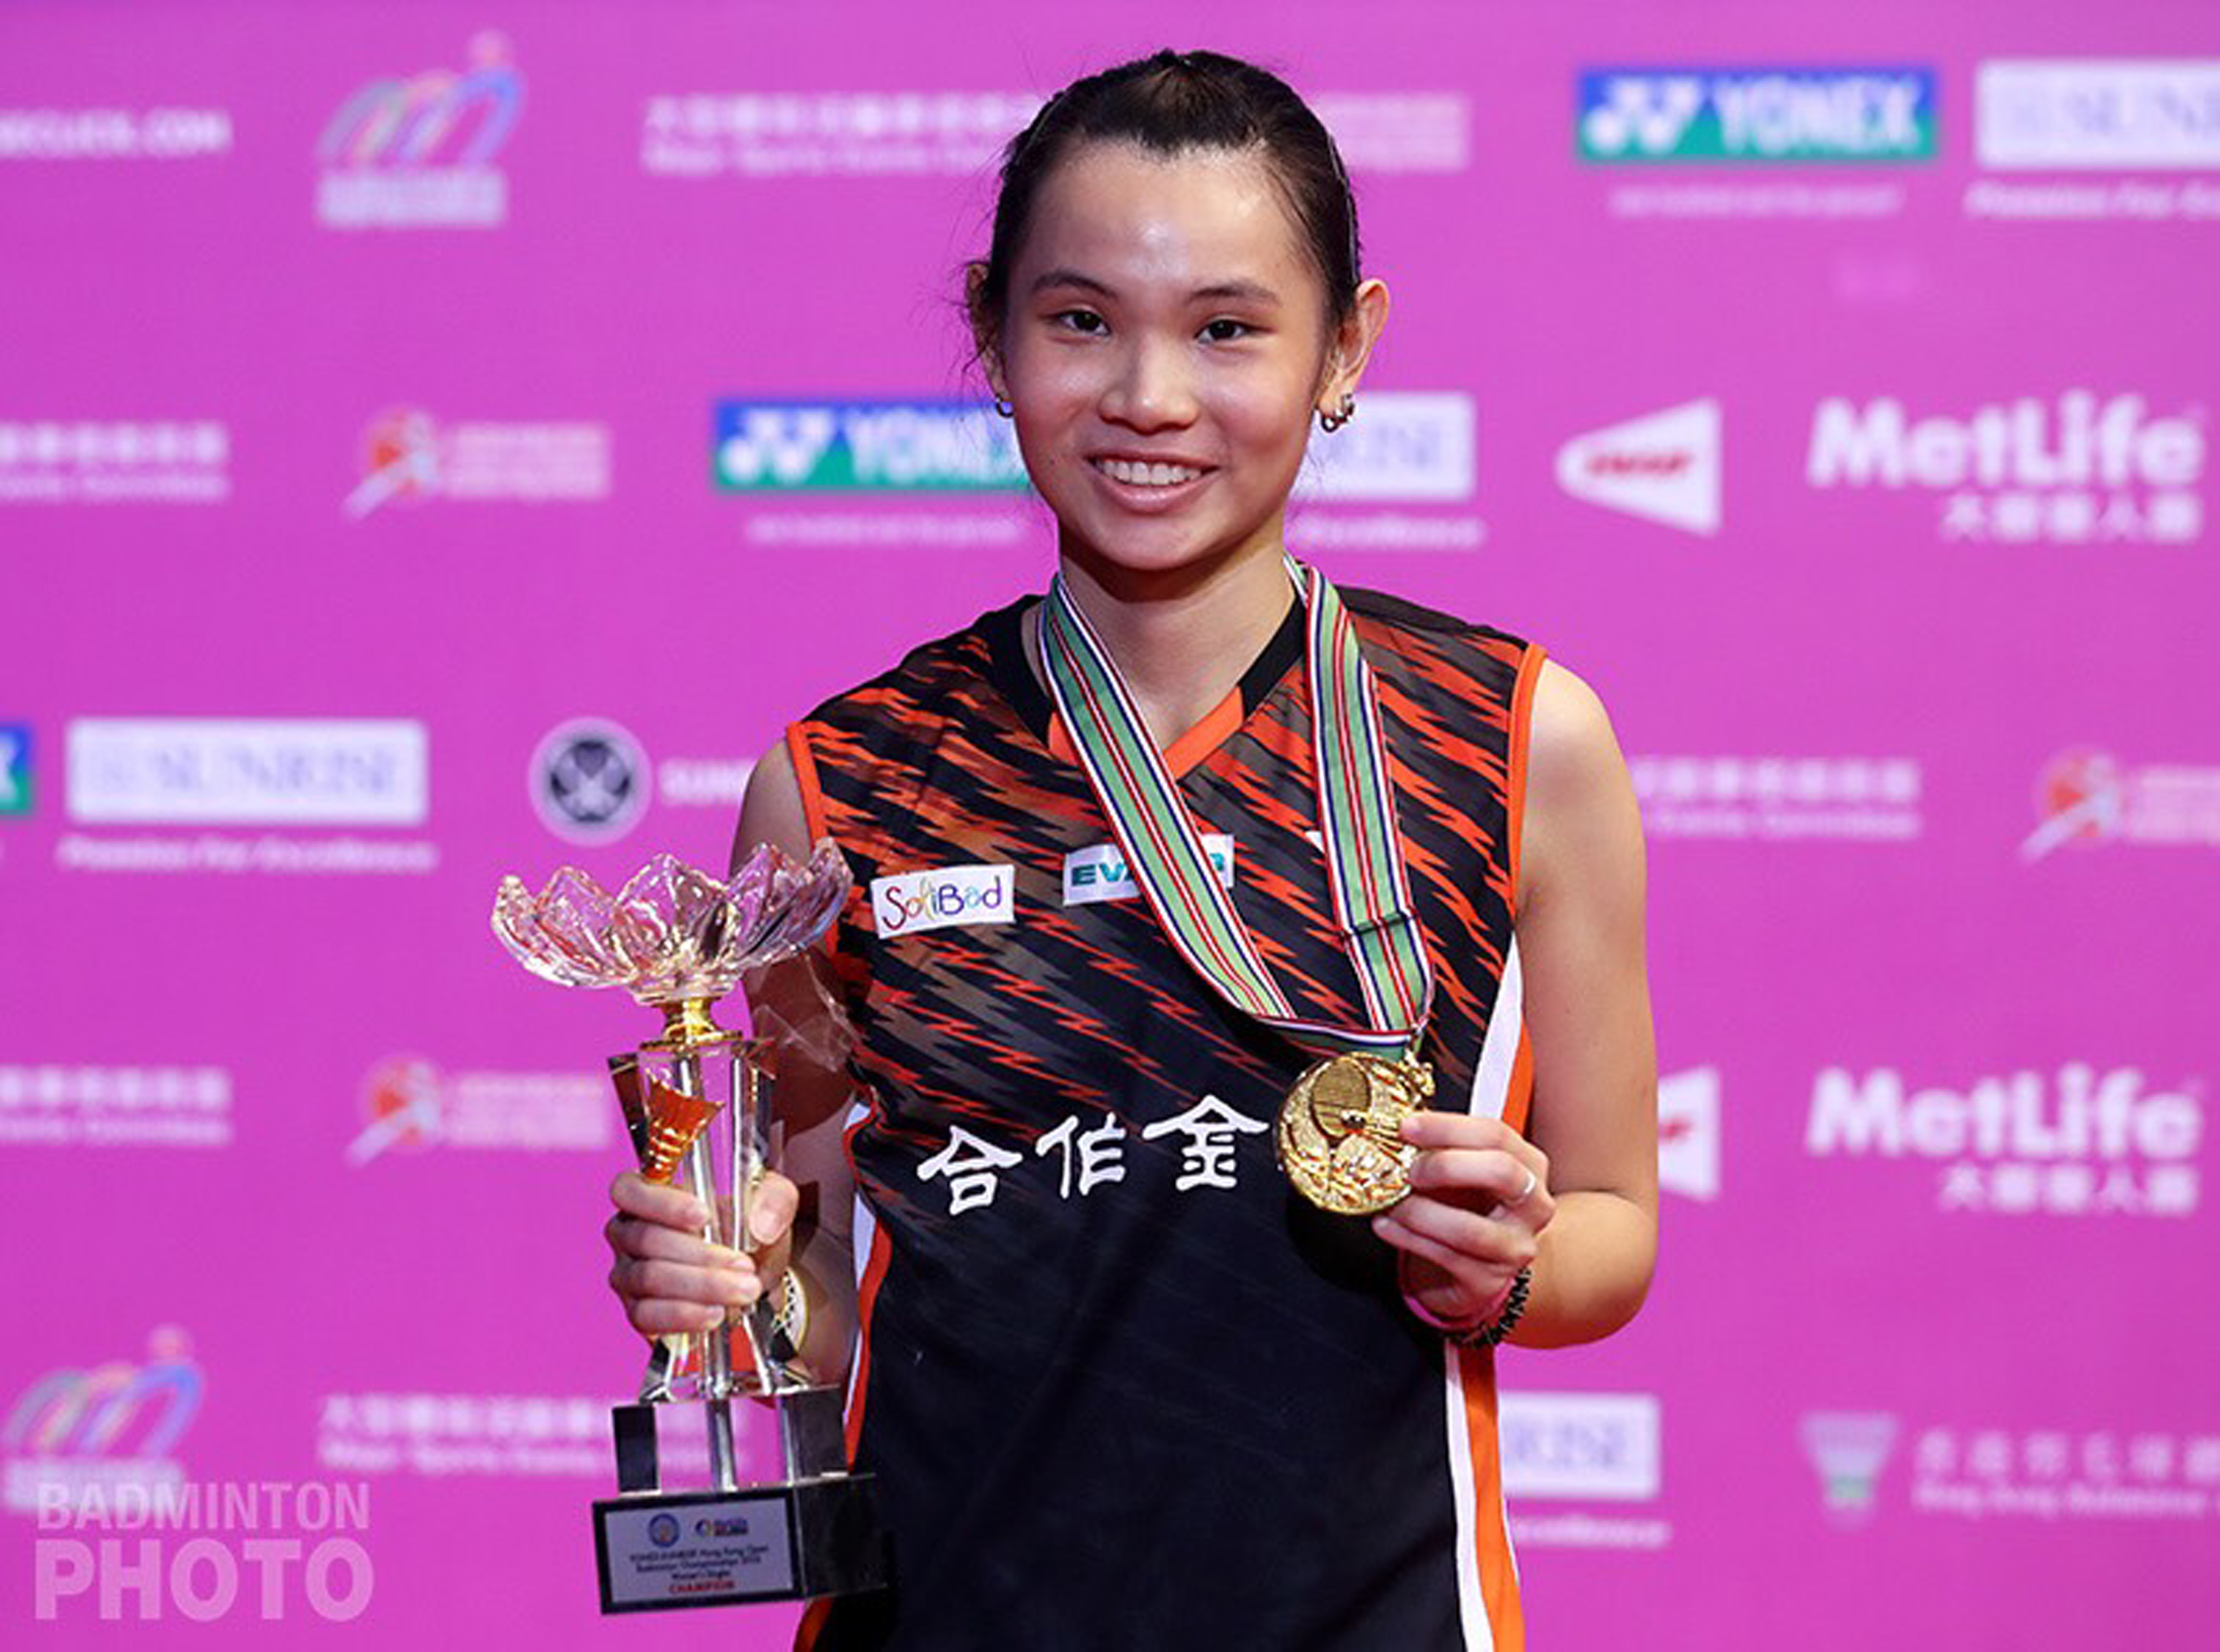 Taiwan s Tai Tzu ying takes world No 1 spot in women s badminton